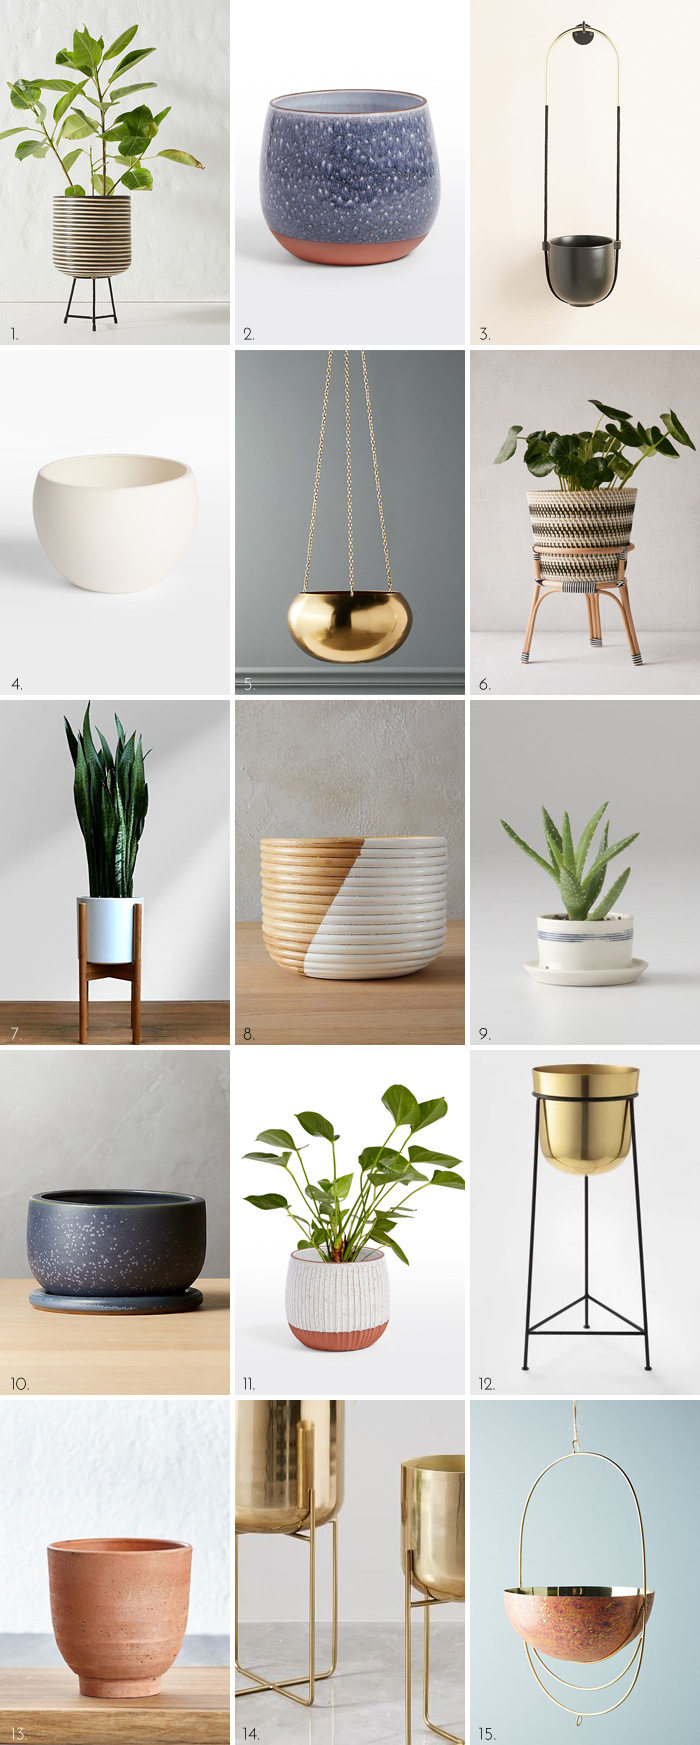 15 Chic Indoor Planters for Your Home